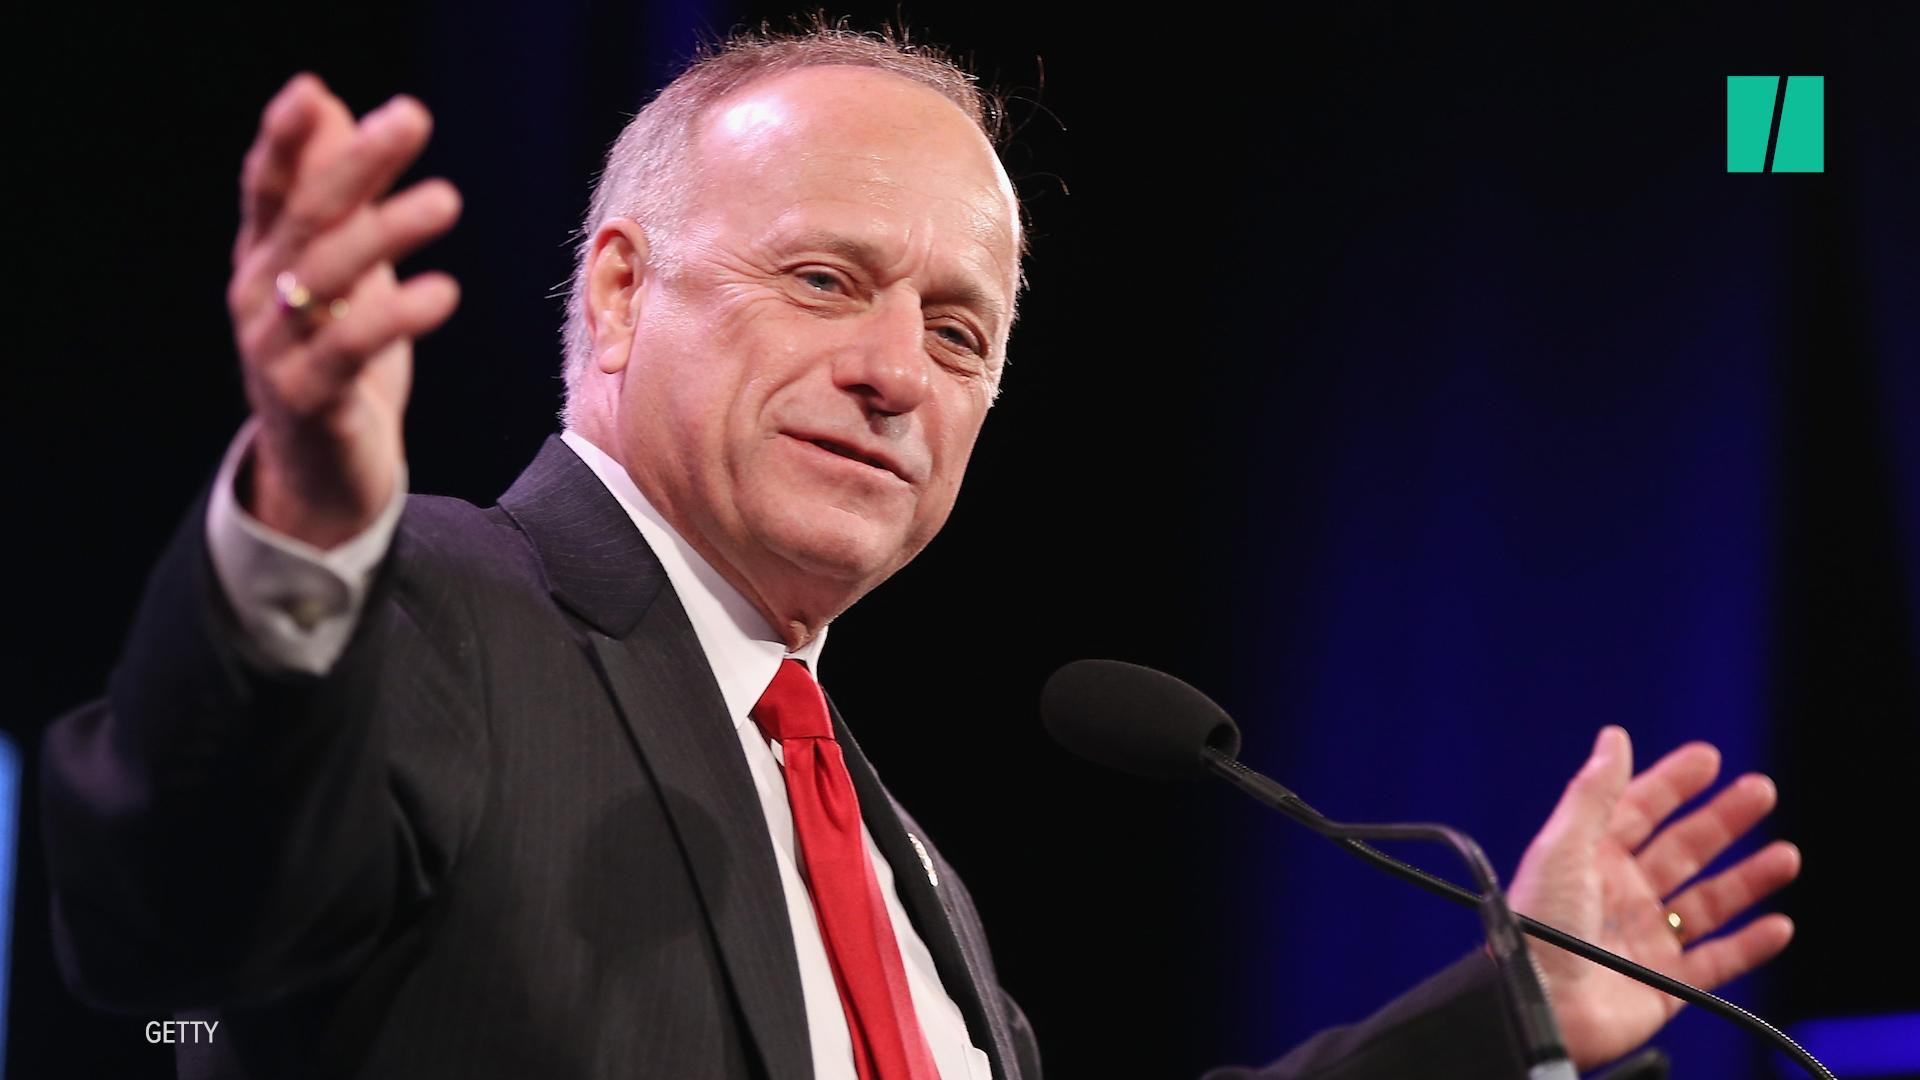 White Nationalist Rep. Steve King Posts Violent Meme About New Civil War